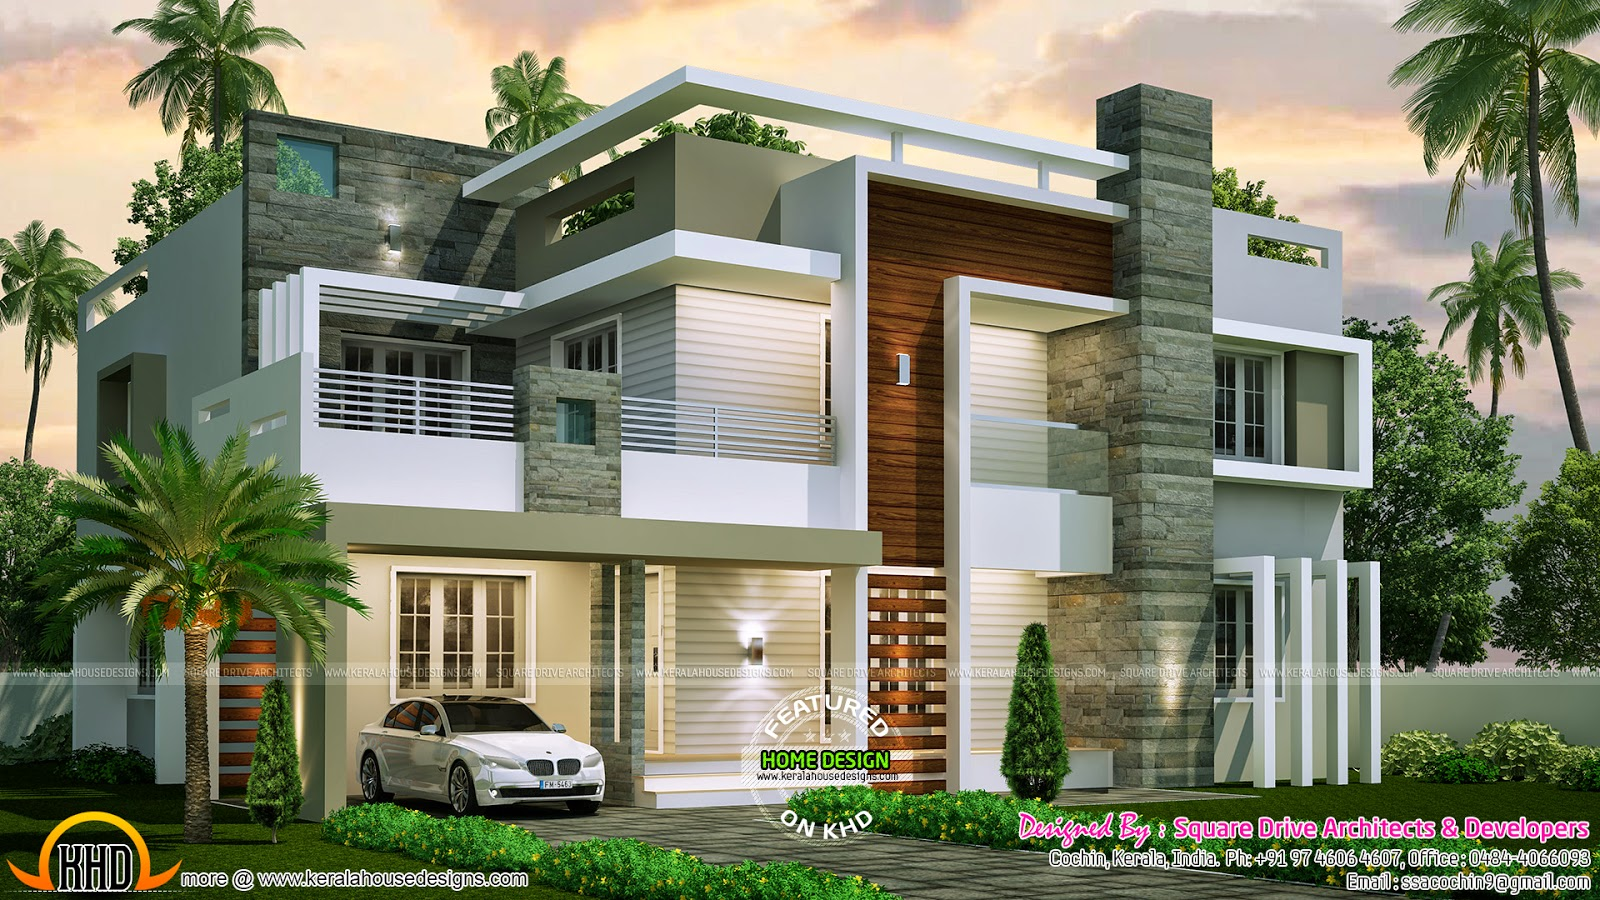 4 bedroom contemporary home design kerala home design for Good house plans and designs